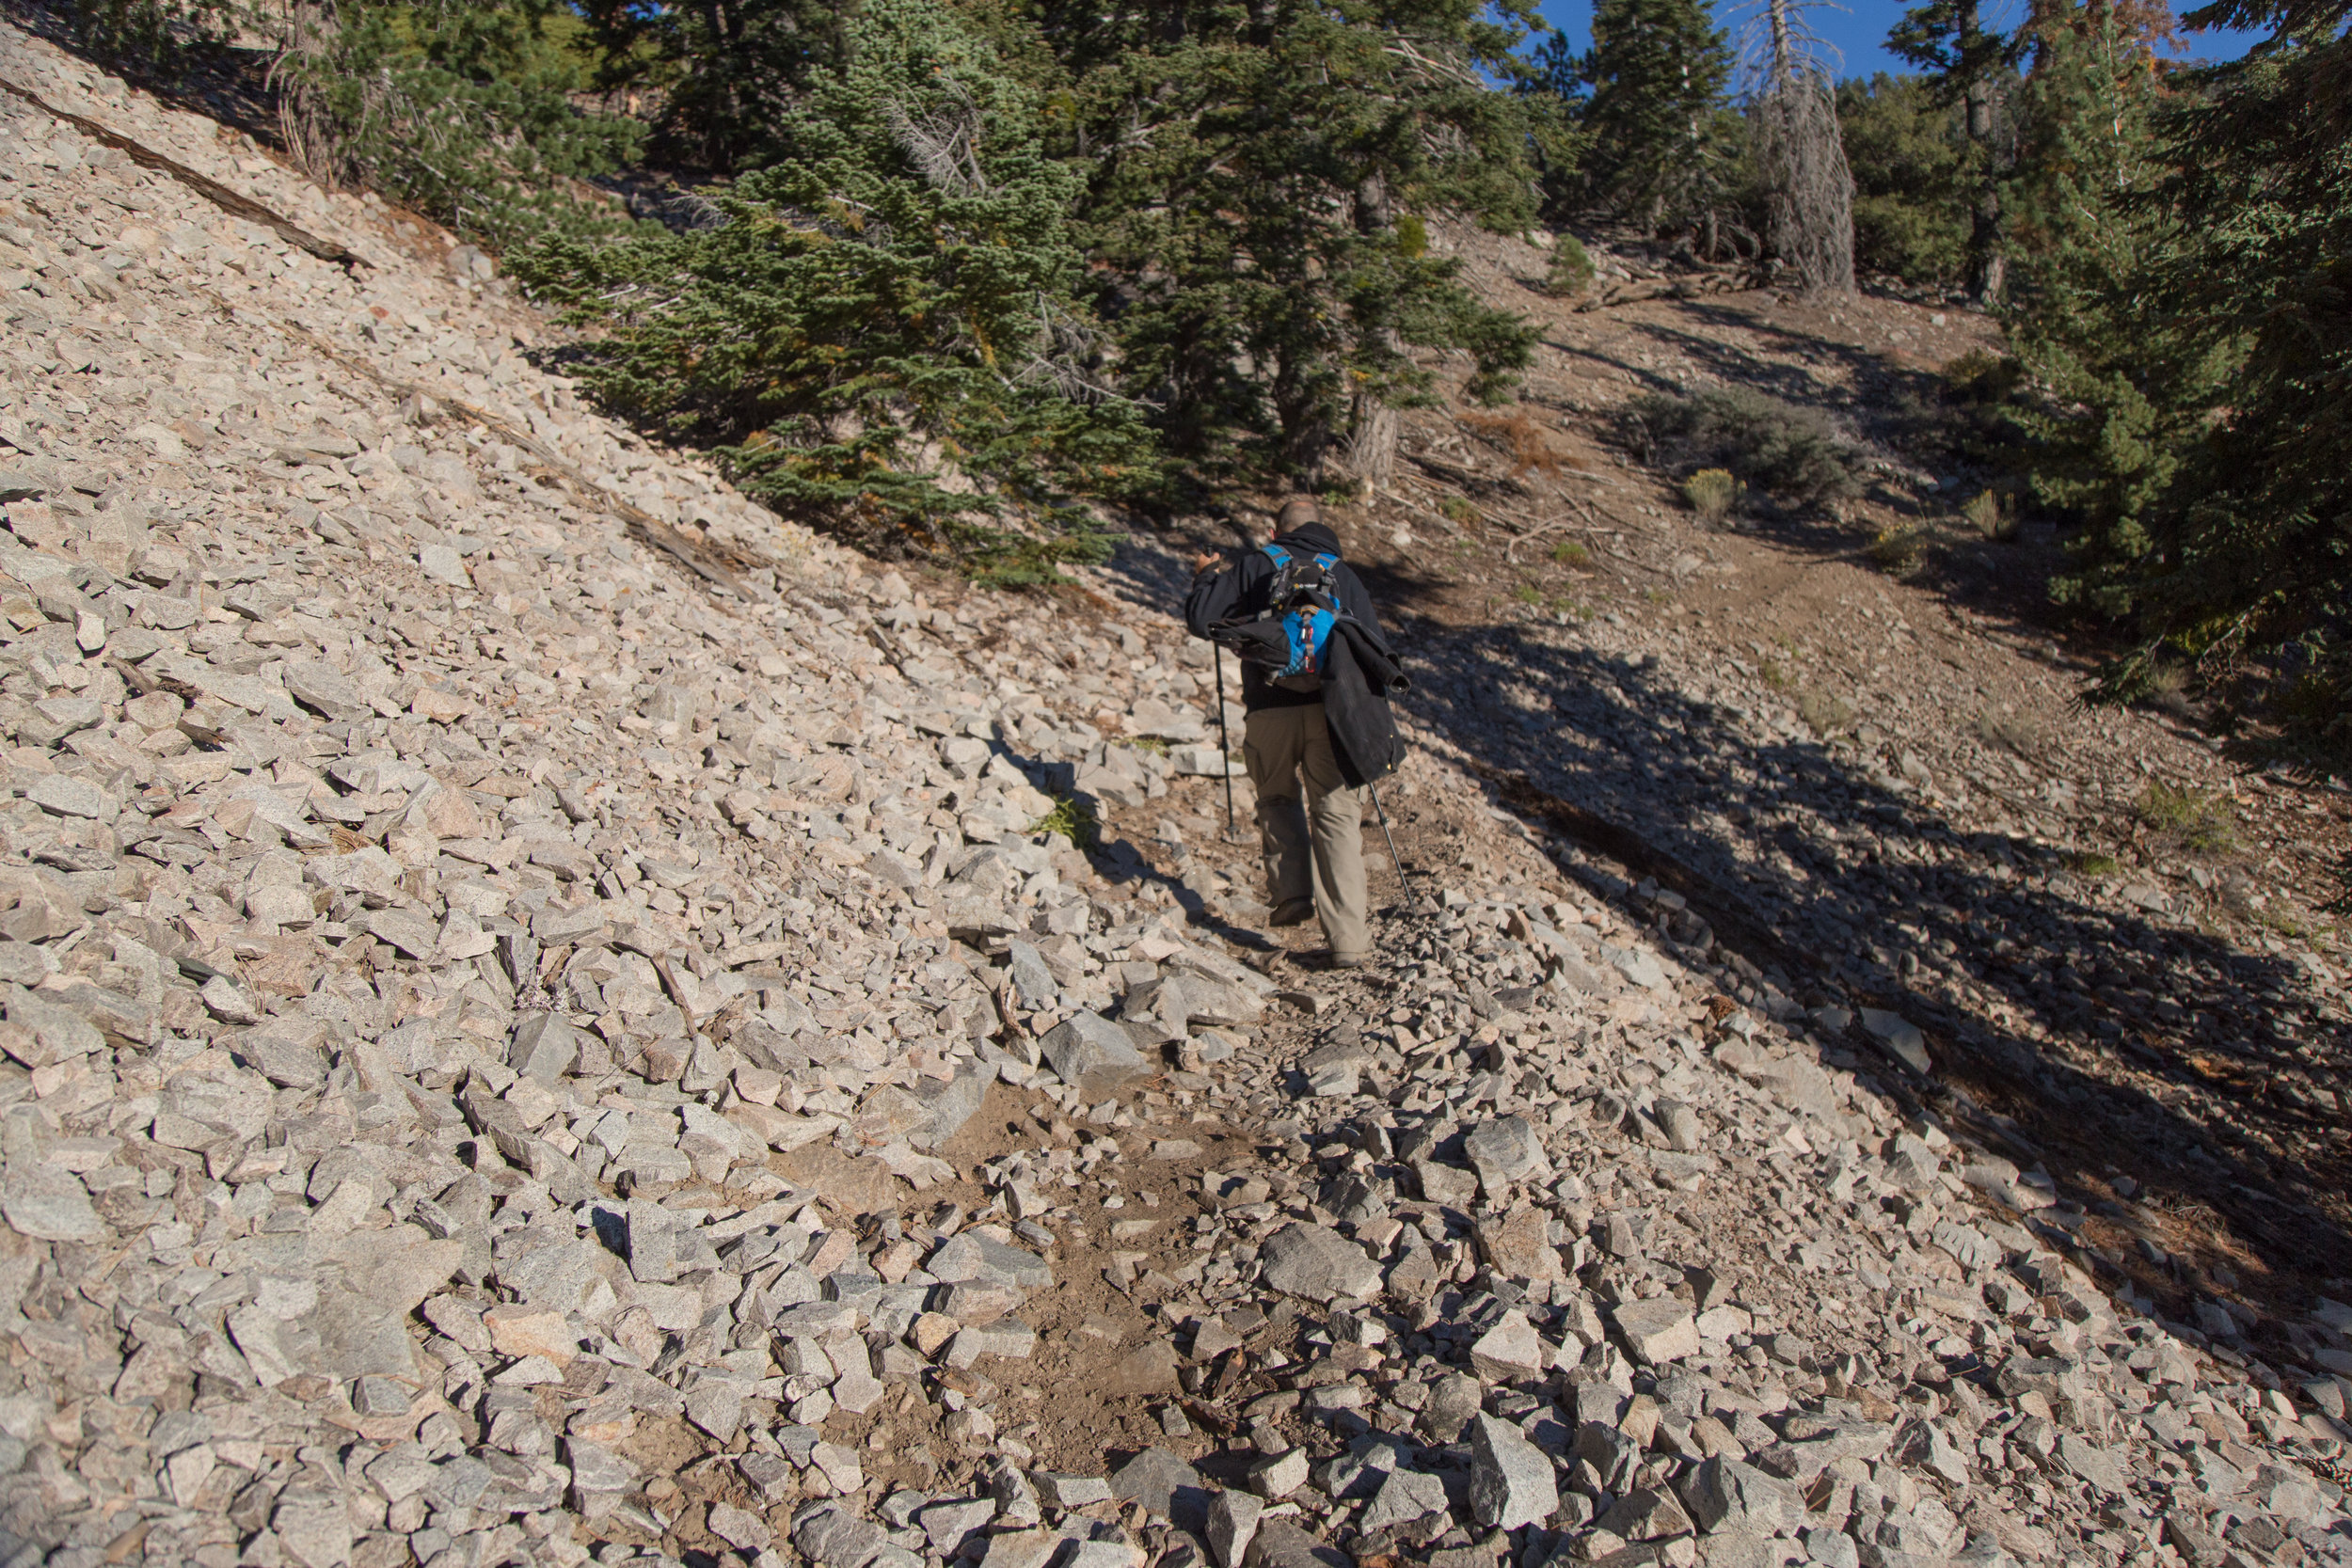 A few parts of the trail are on rock so you need to be a little careful.